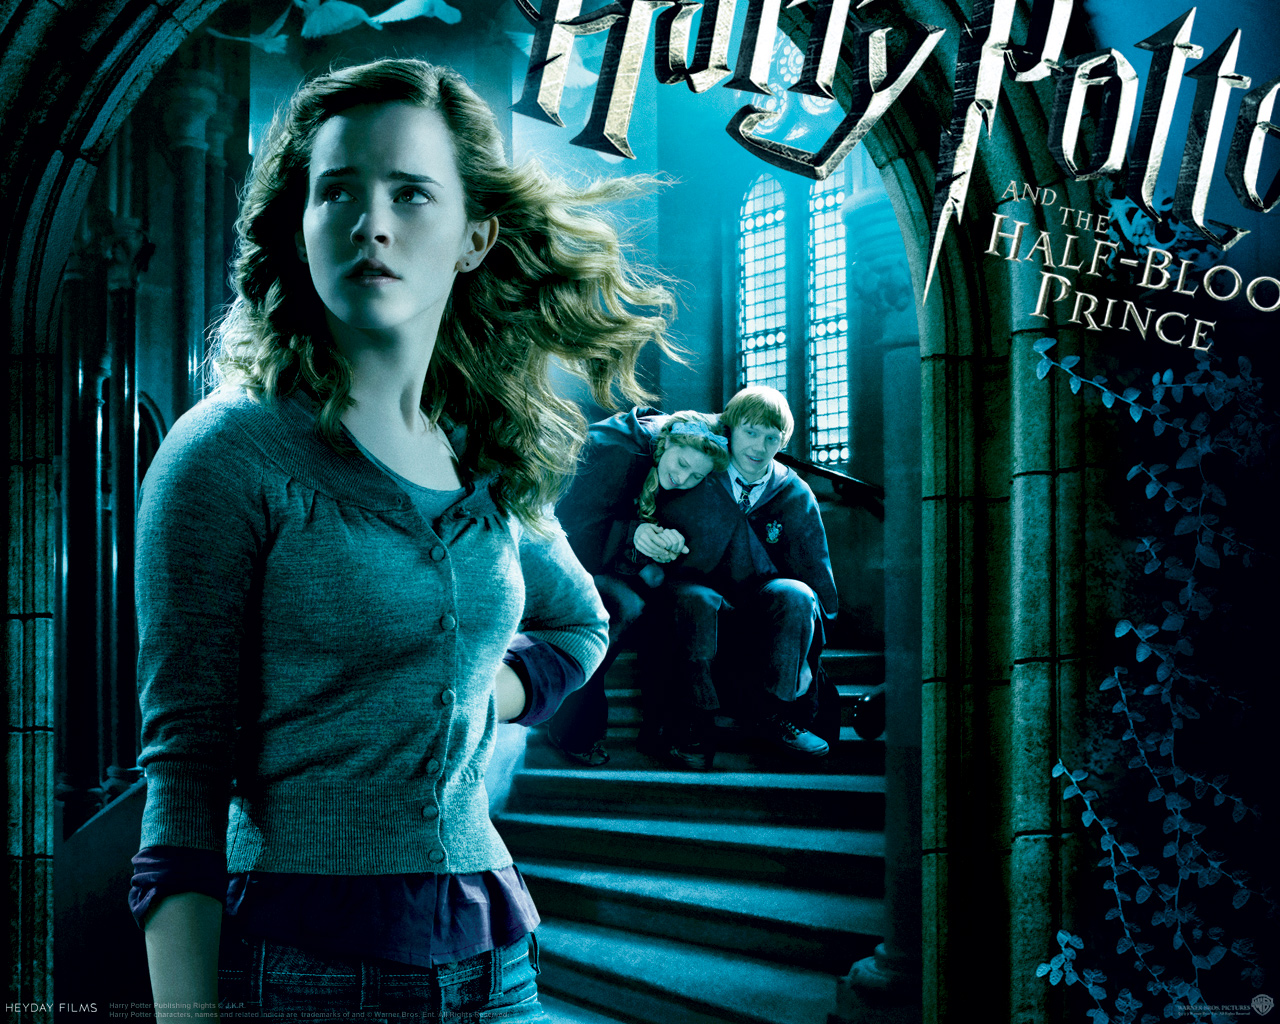 wallpaper harry potter harry potter and the half-blood prince emma